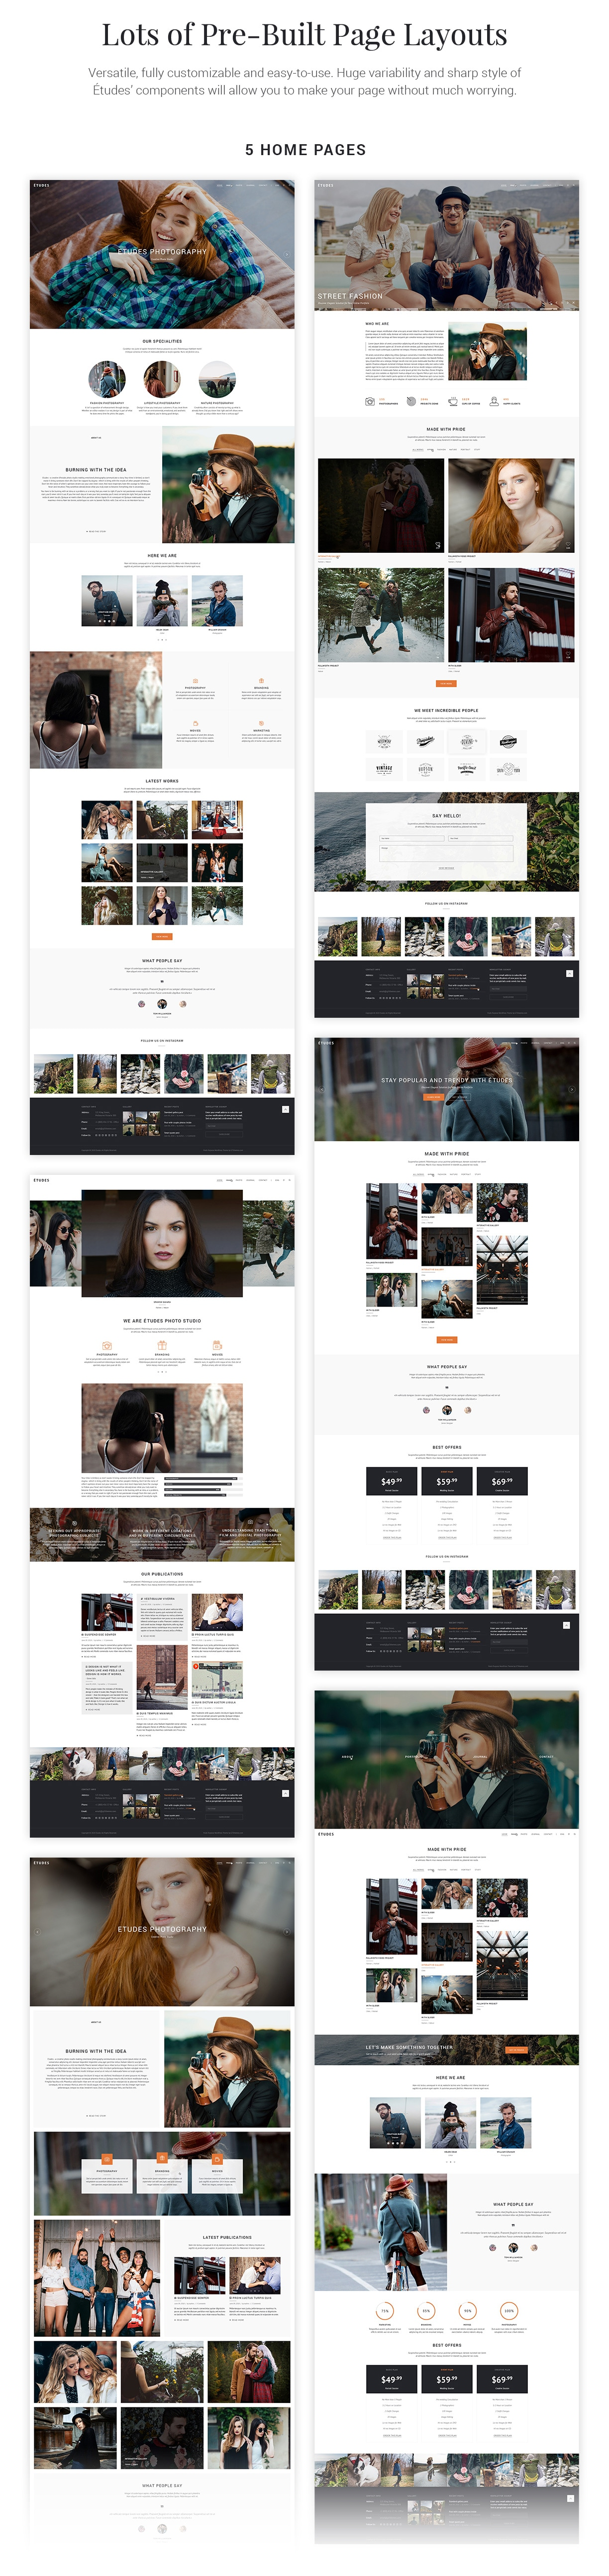 Premium Photography WordPress Theme - Etudes - 4